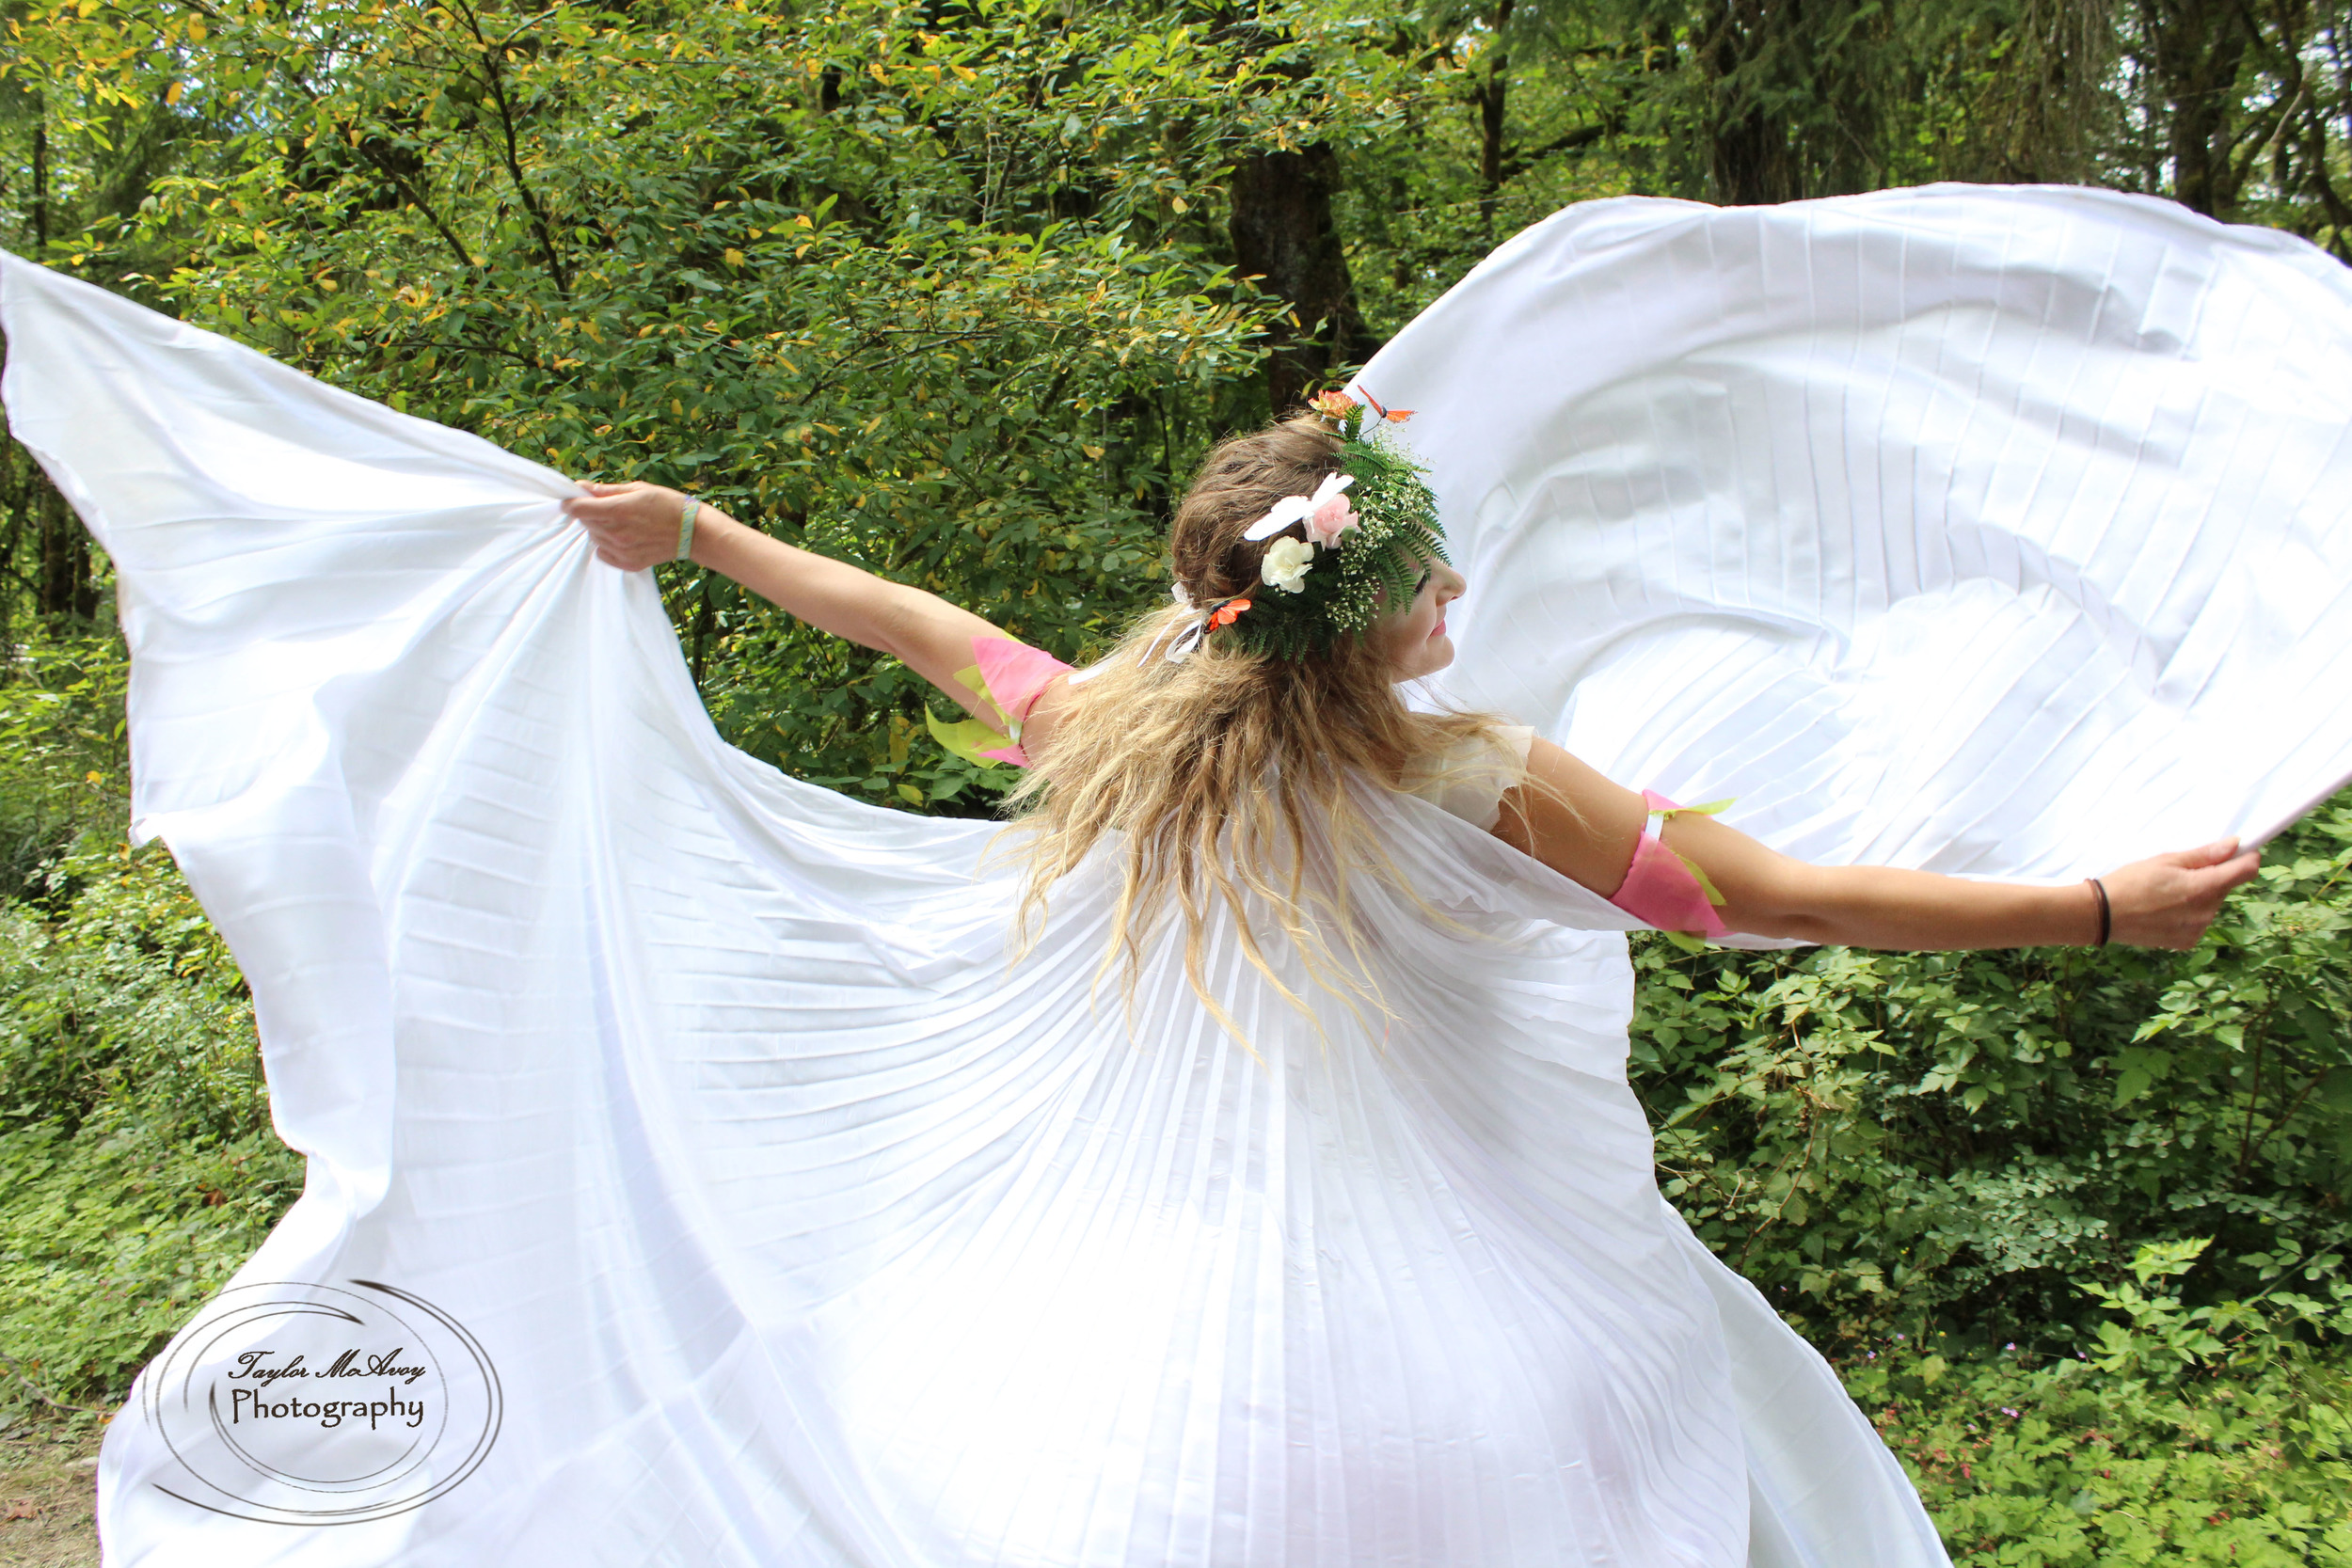 Mythical faeries are real and they live in festival and forested environments.